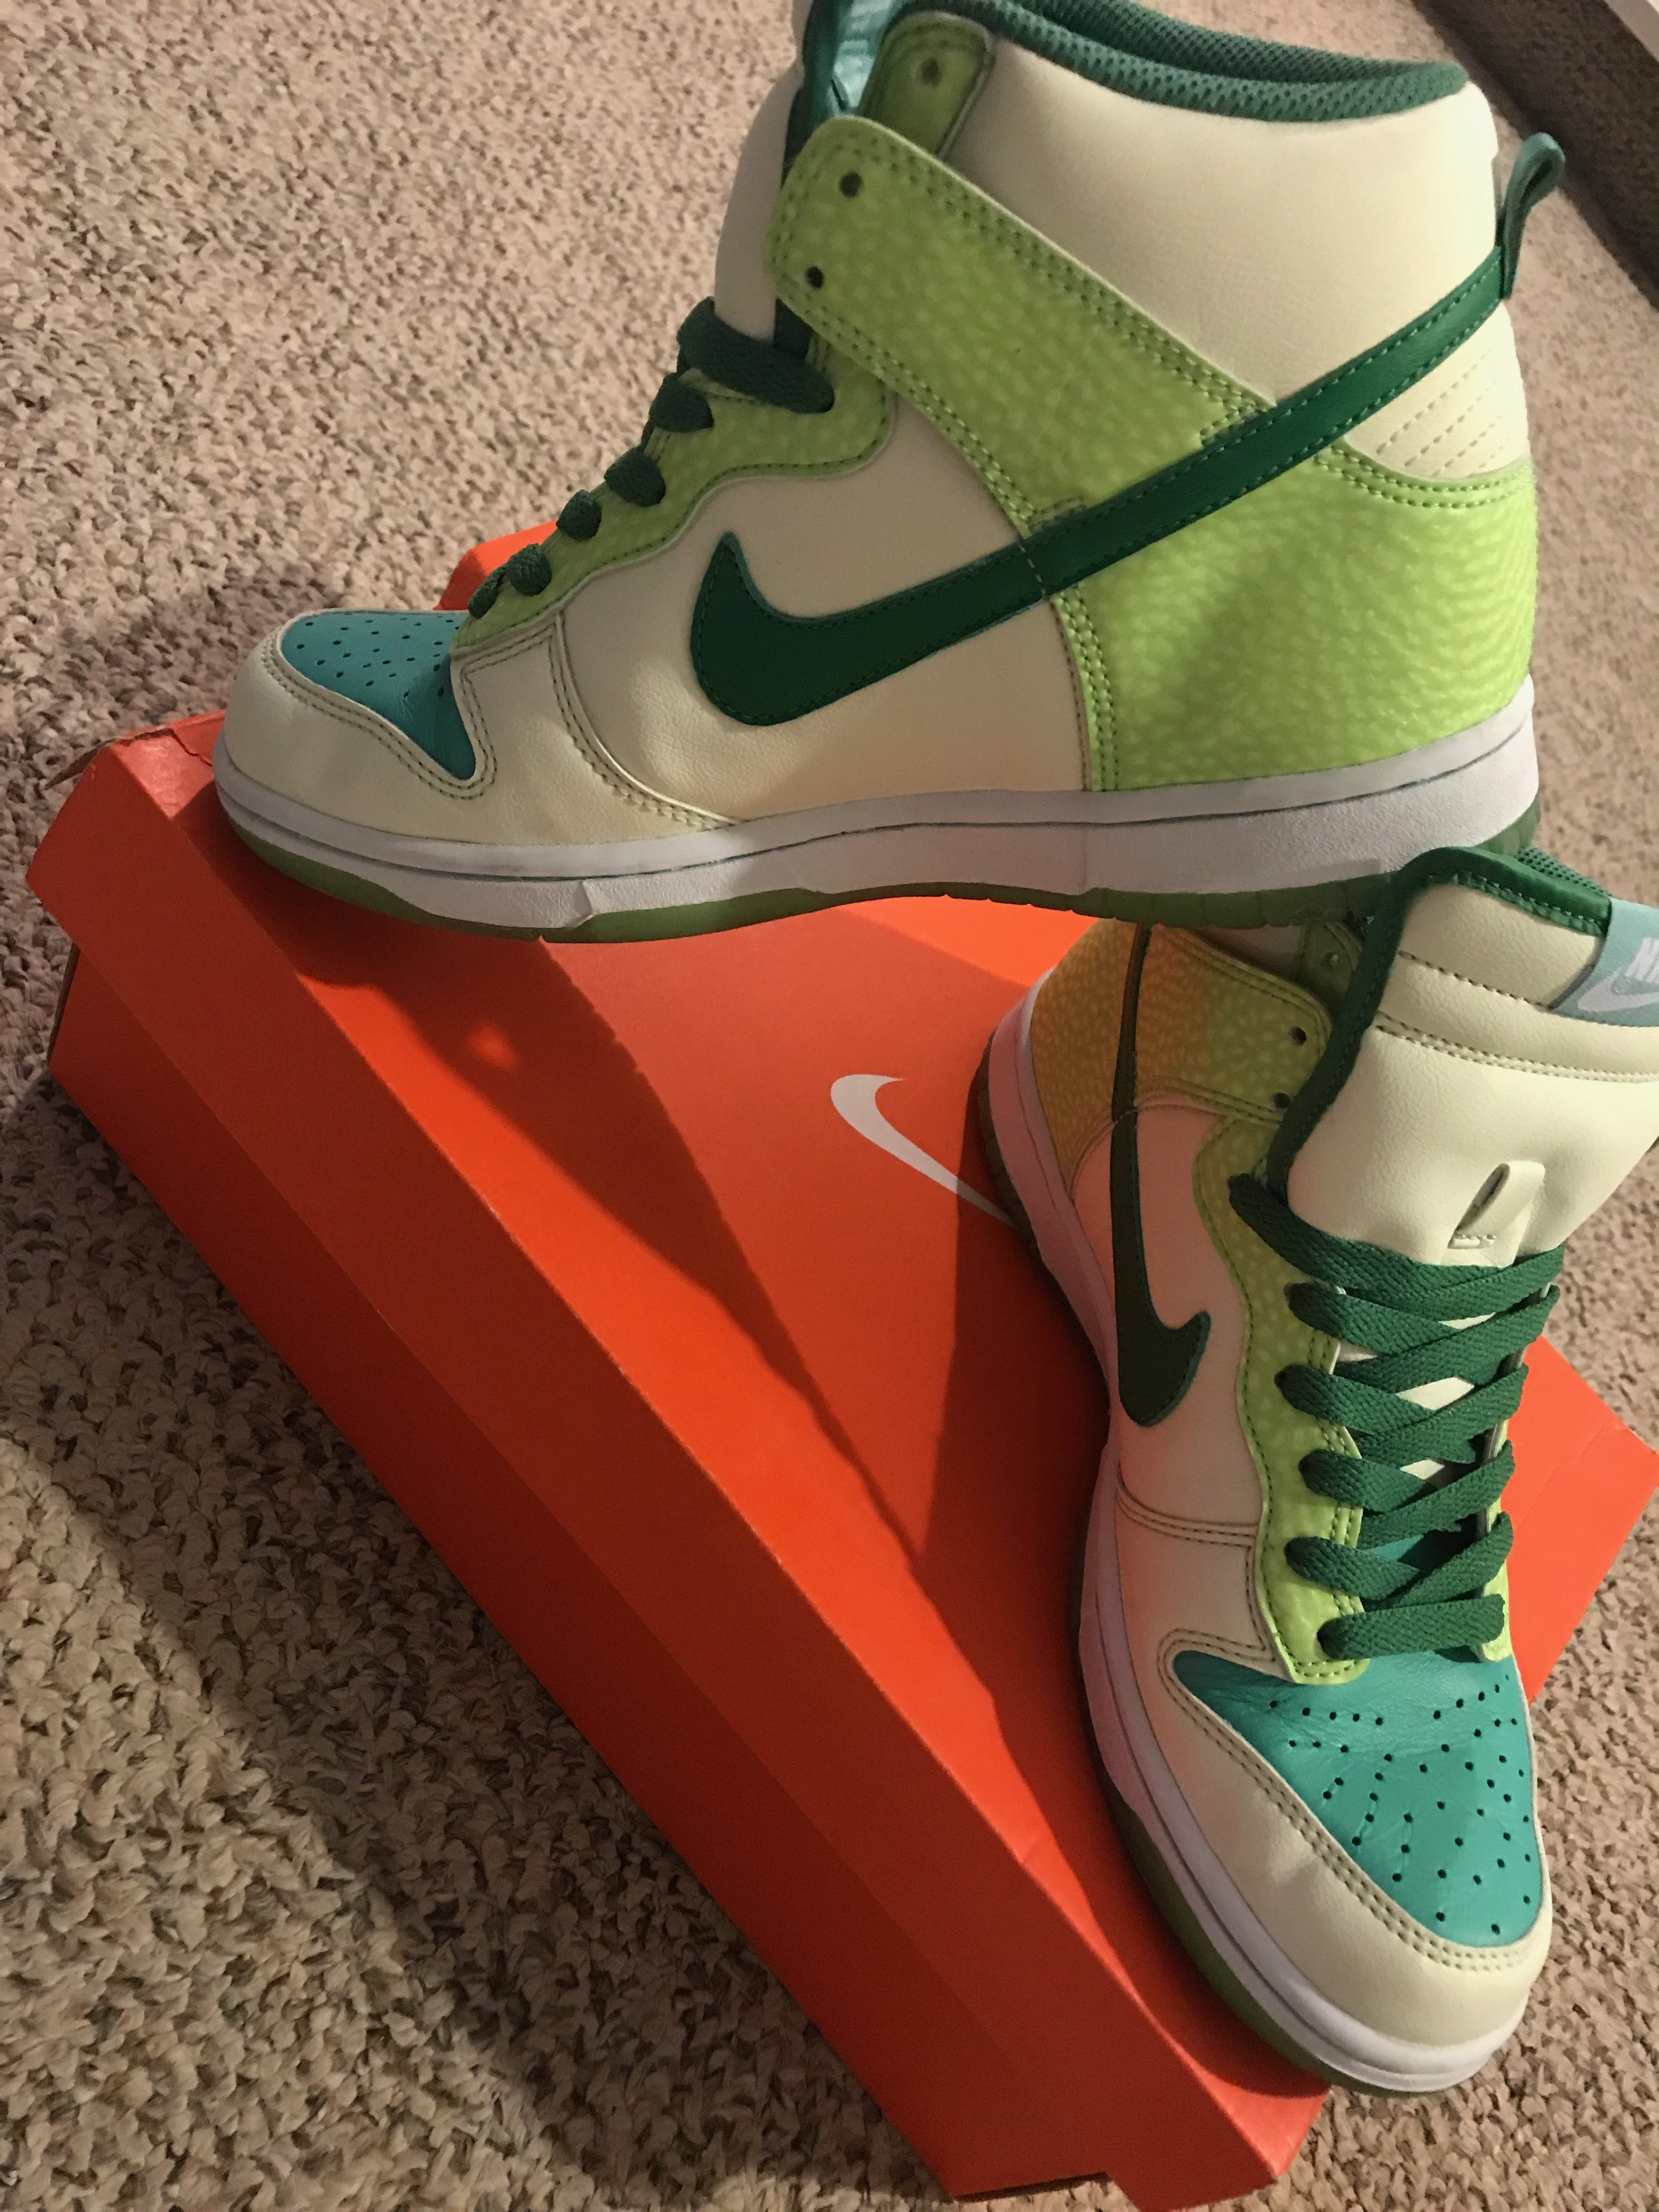 $100 BRAND NEW Nike Dunk High premium glow in the dark  - size 6 mens - with original boxRETAIL: $149